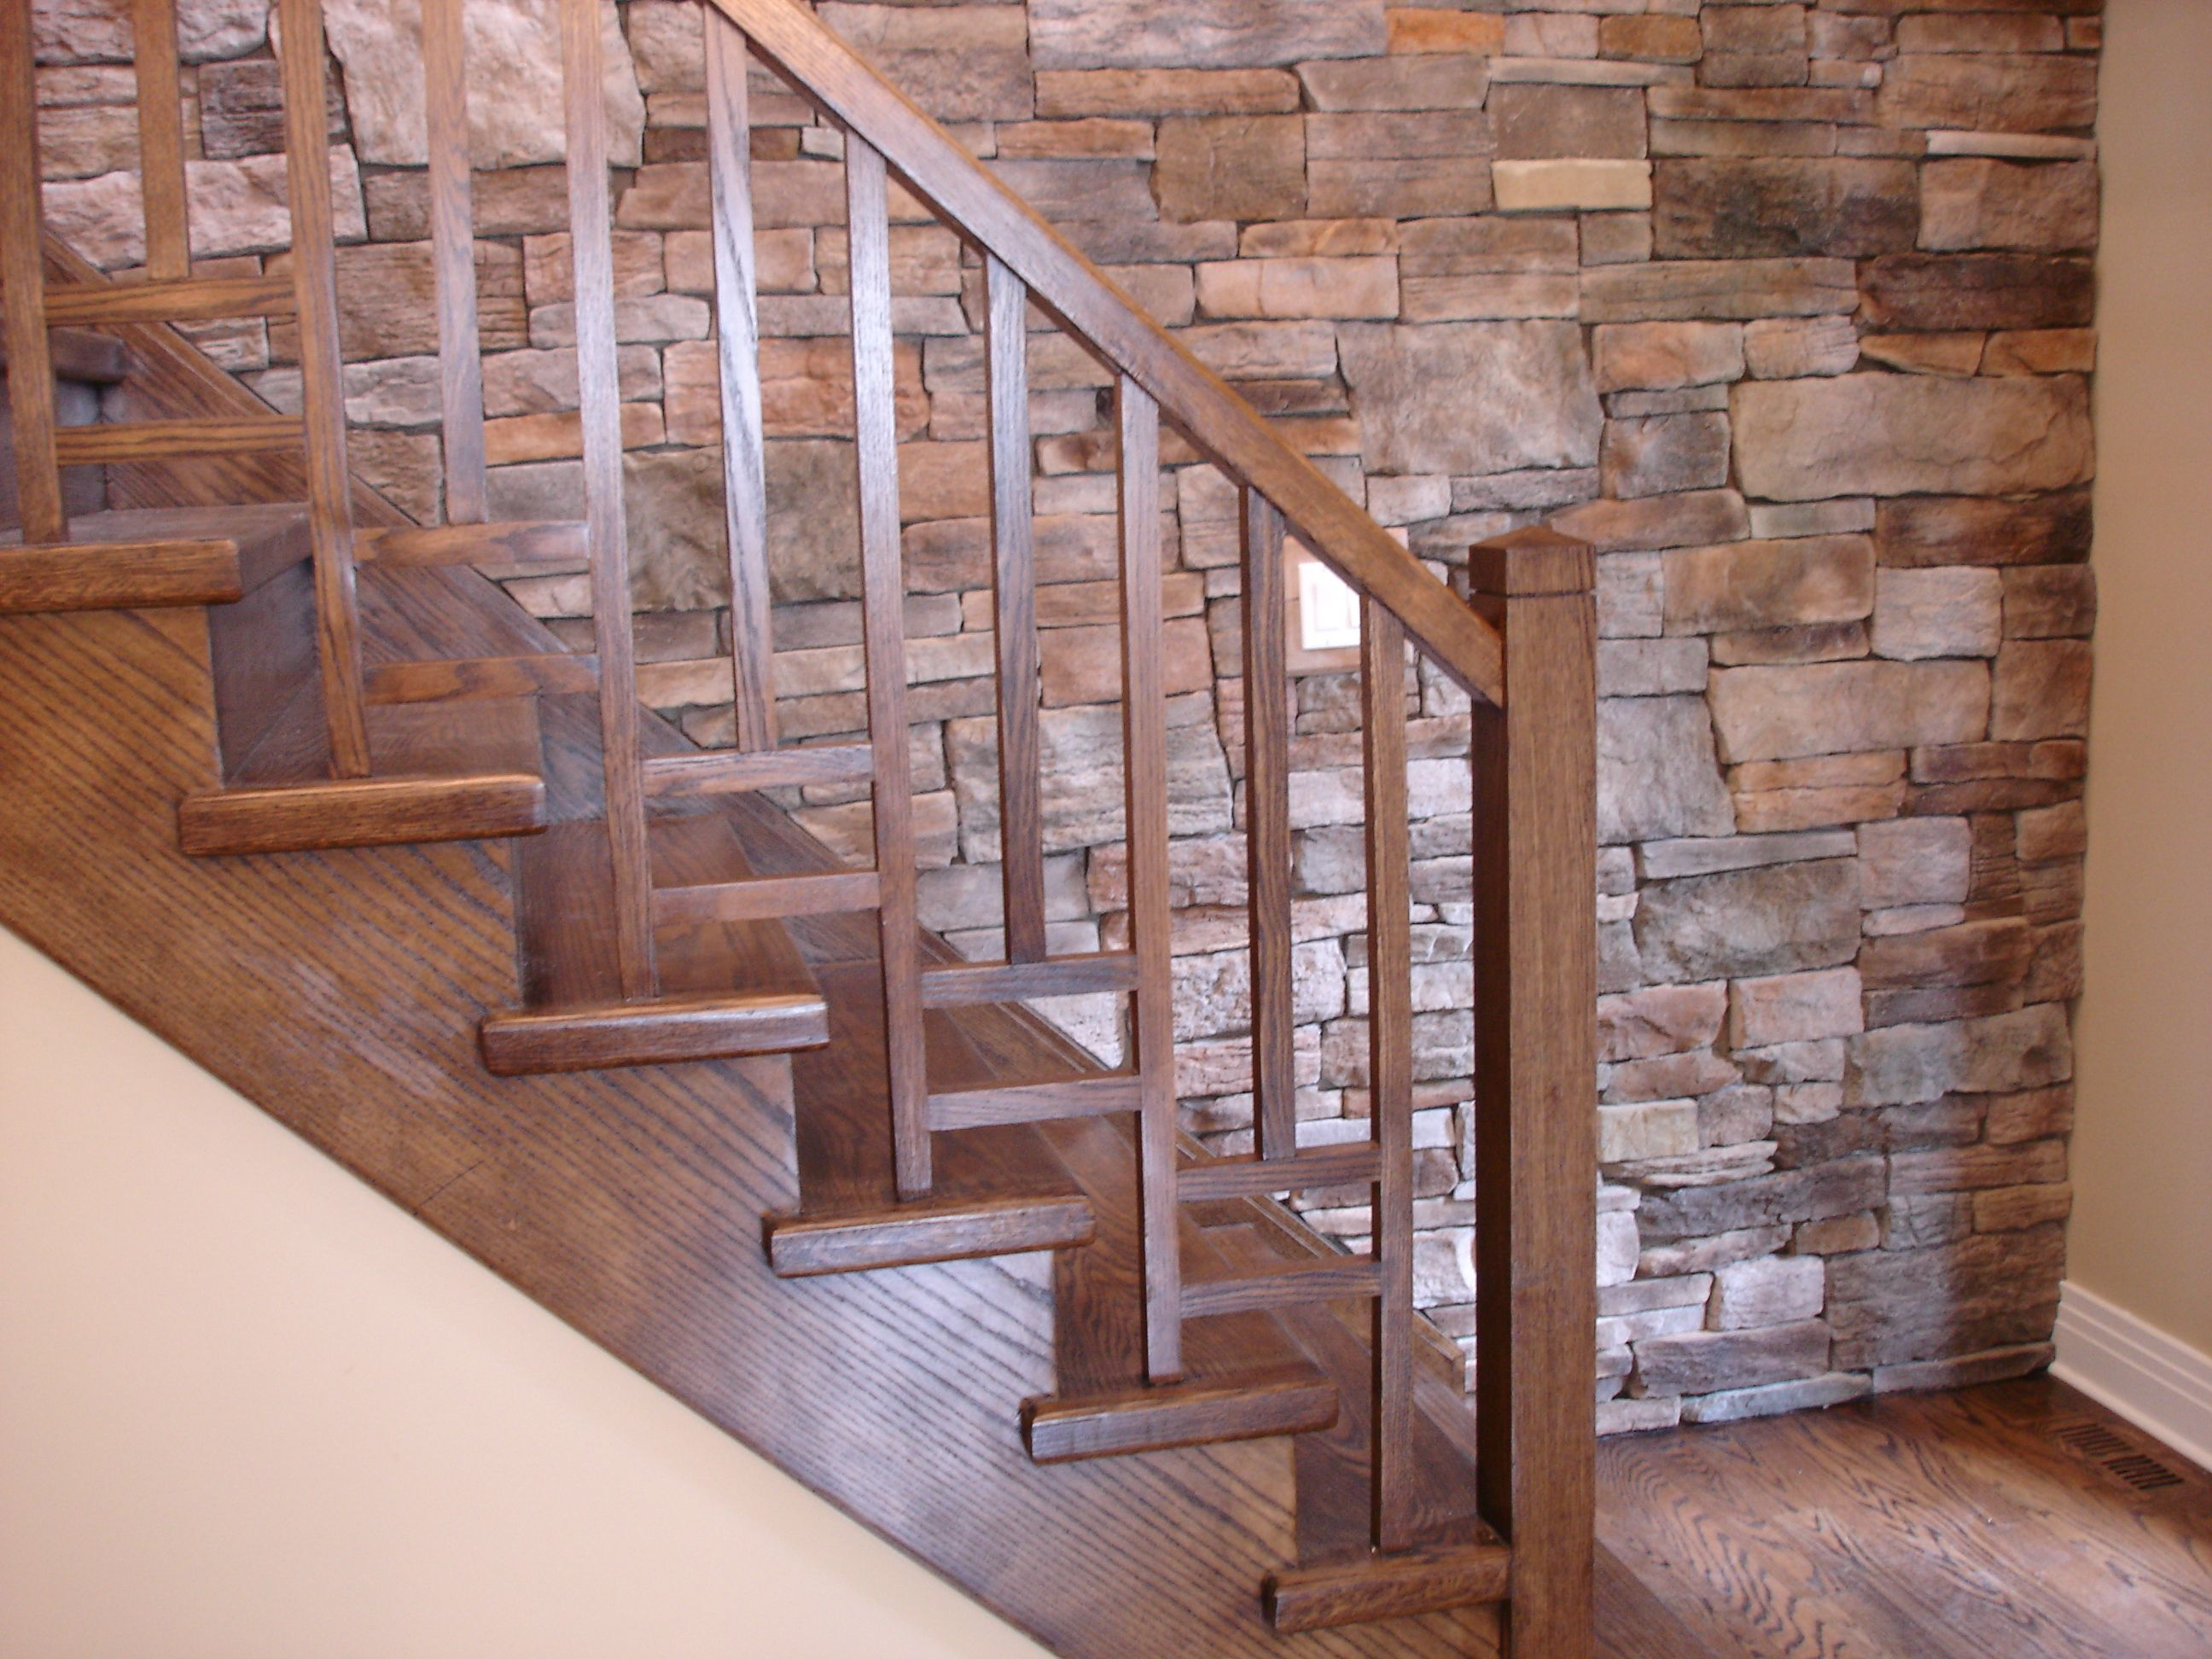 modern interior stair railings mestel brothers stairs rails inc 516 496 4127 wood stair builders - Wall Railings Designs